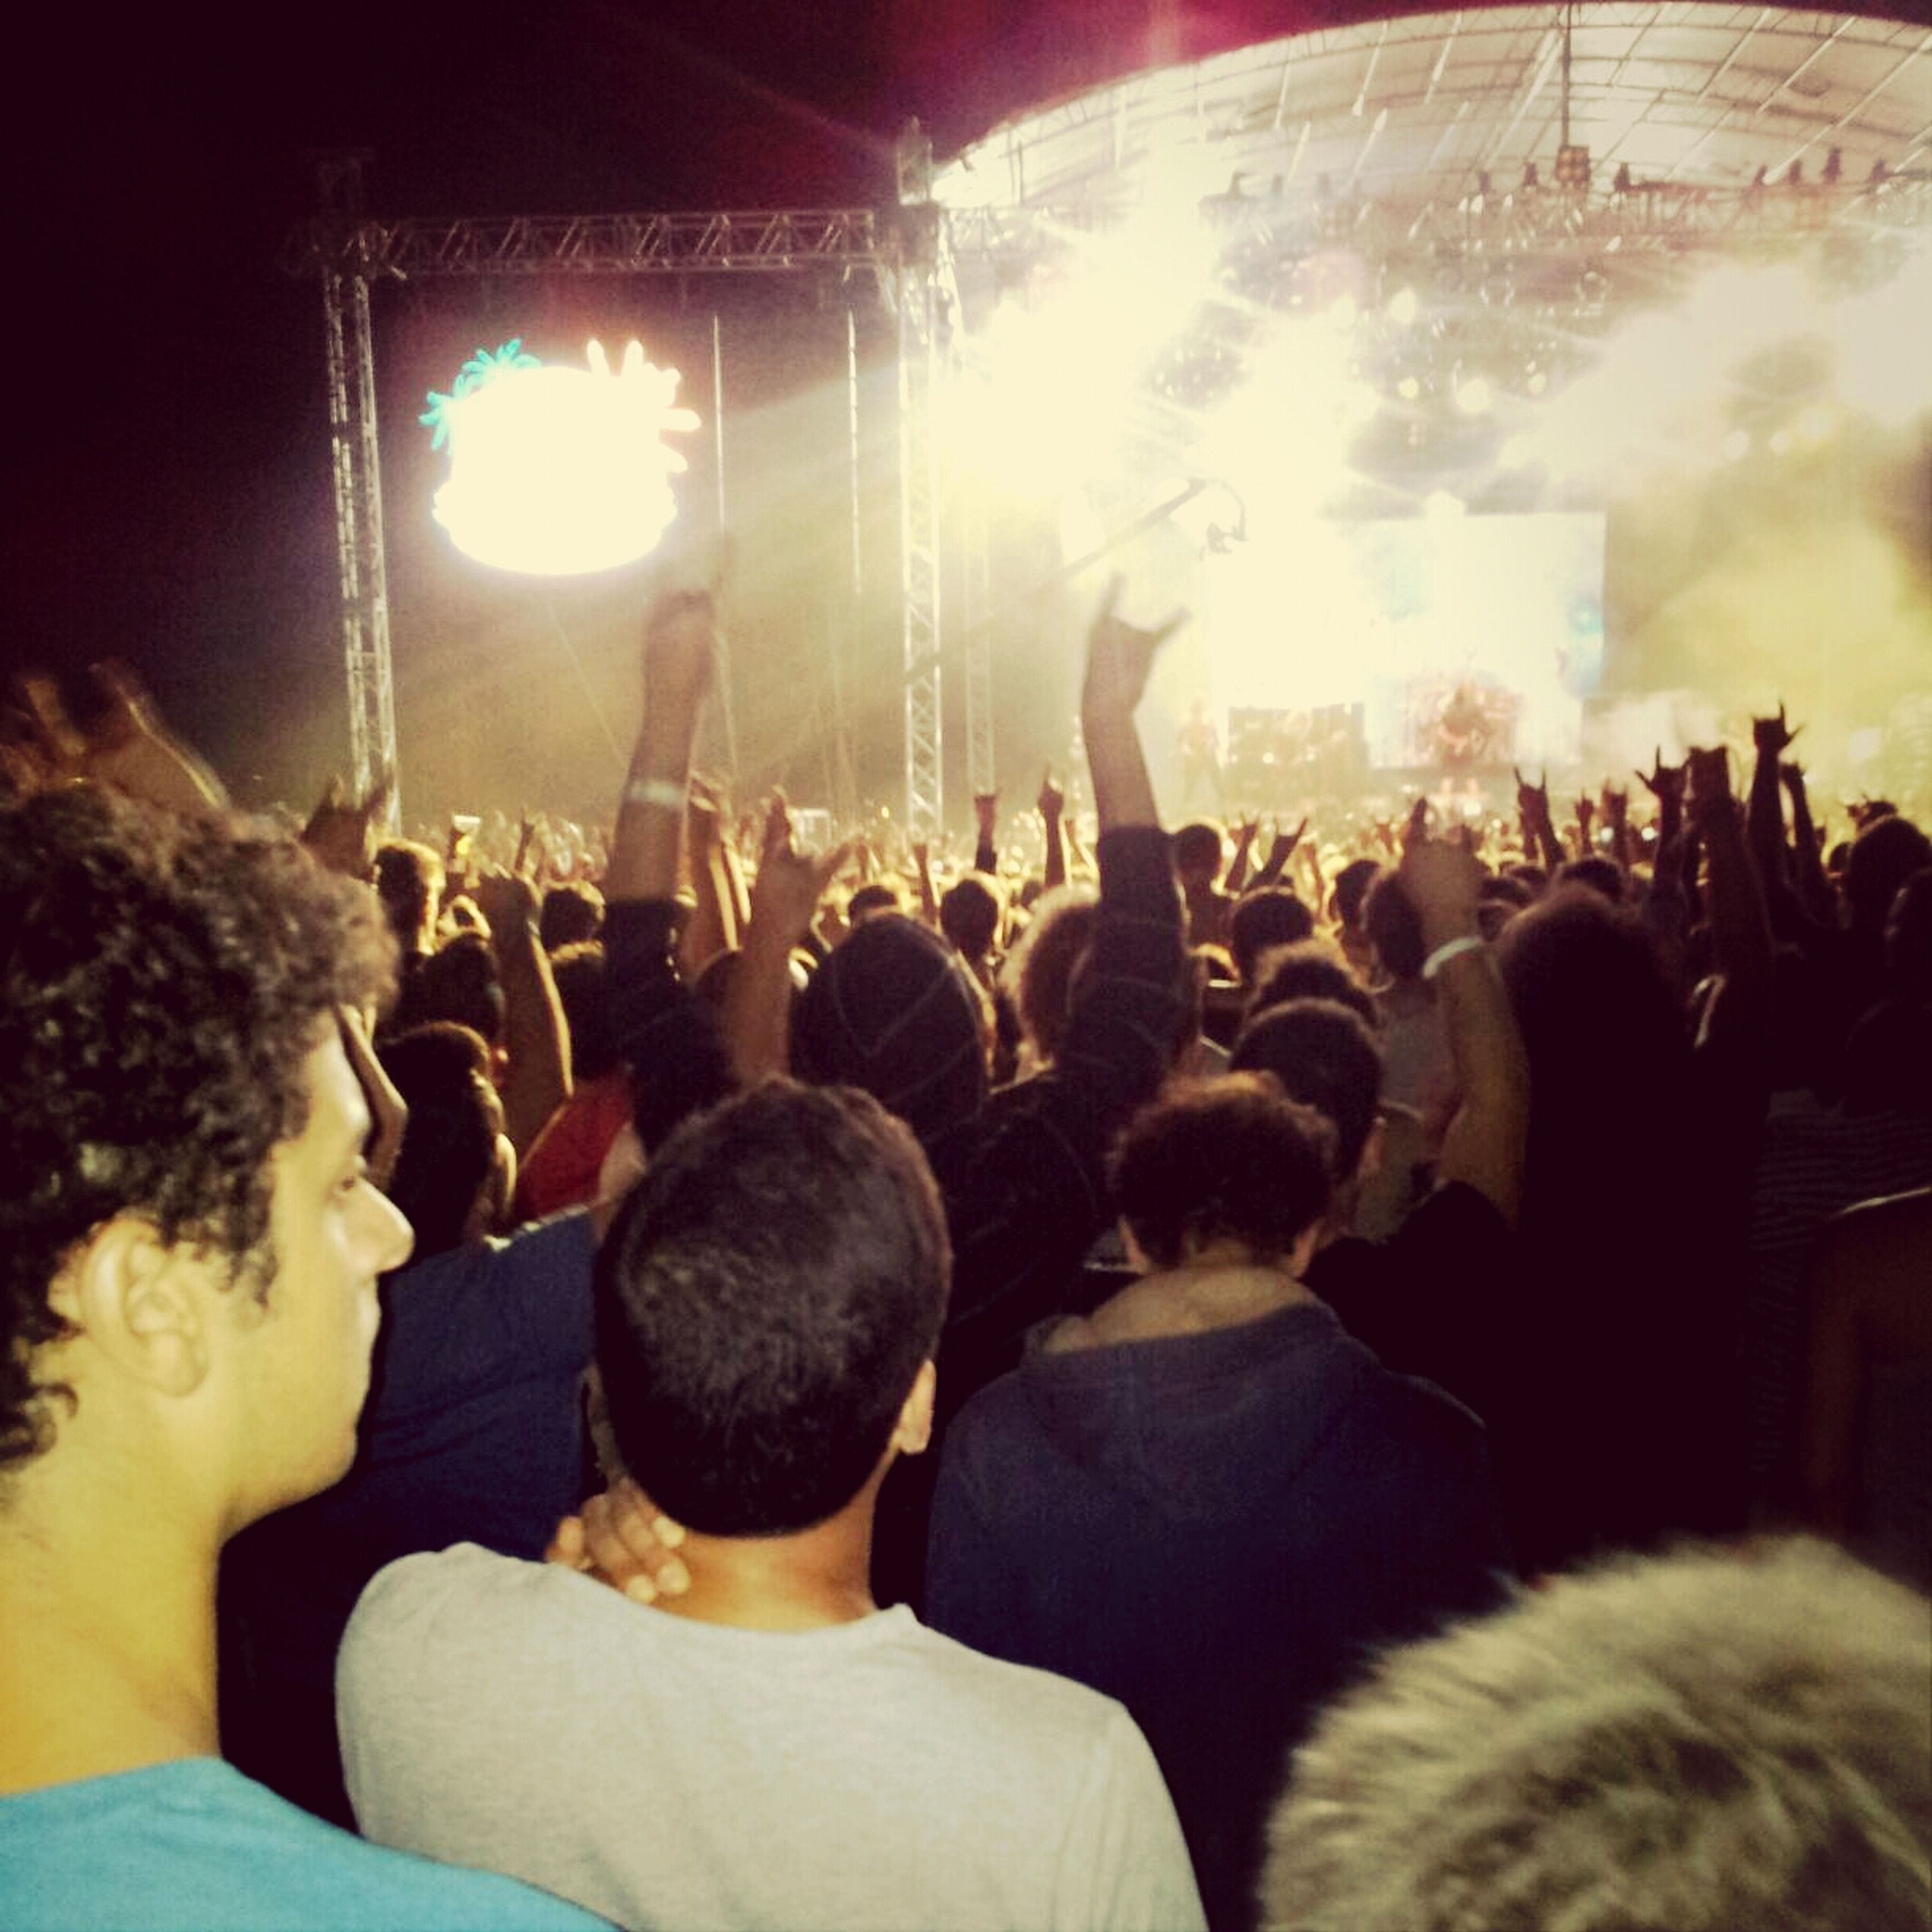 large group of people, crowd, lifestyles, men, person, leisure activity, illuminated, togetherness, indoors, arts culture and entertainment, night, music, enjoyment, event, fun, performance, music festival, popular music concert